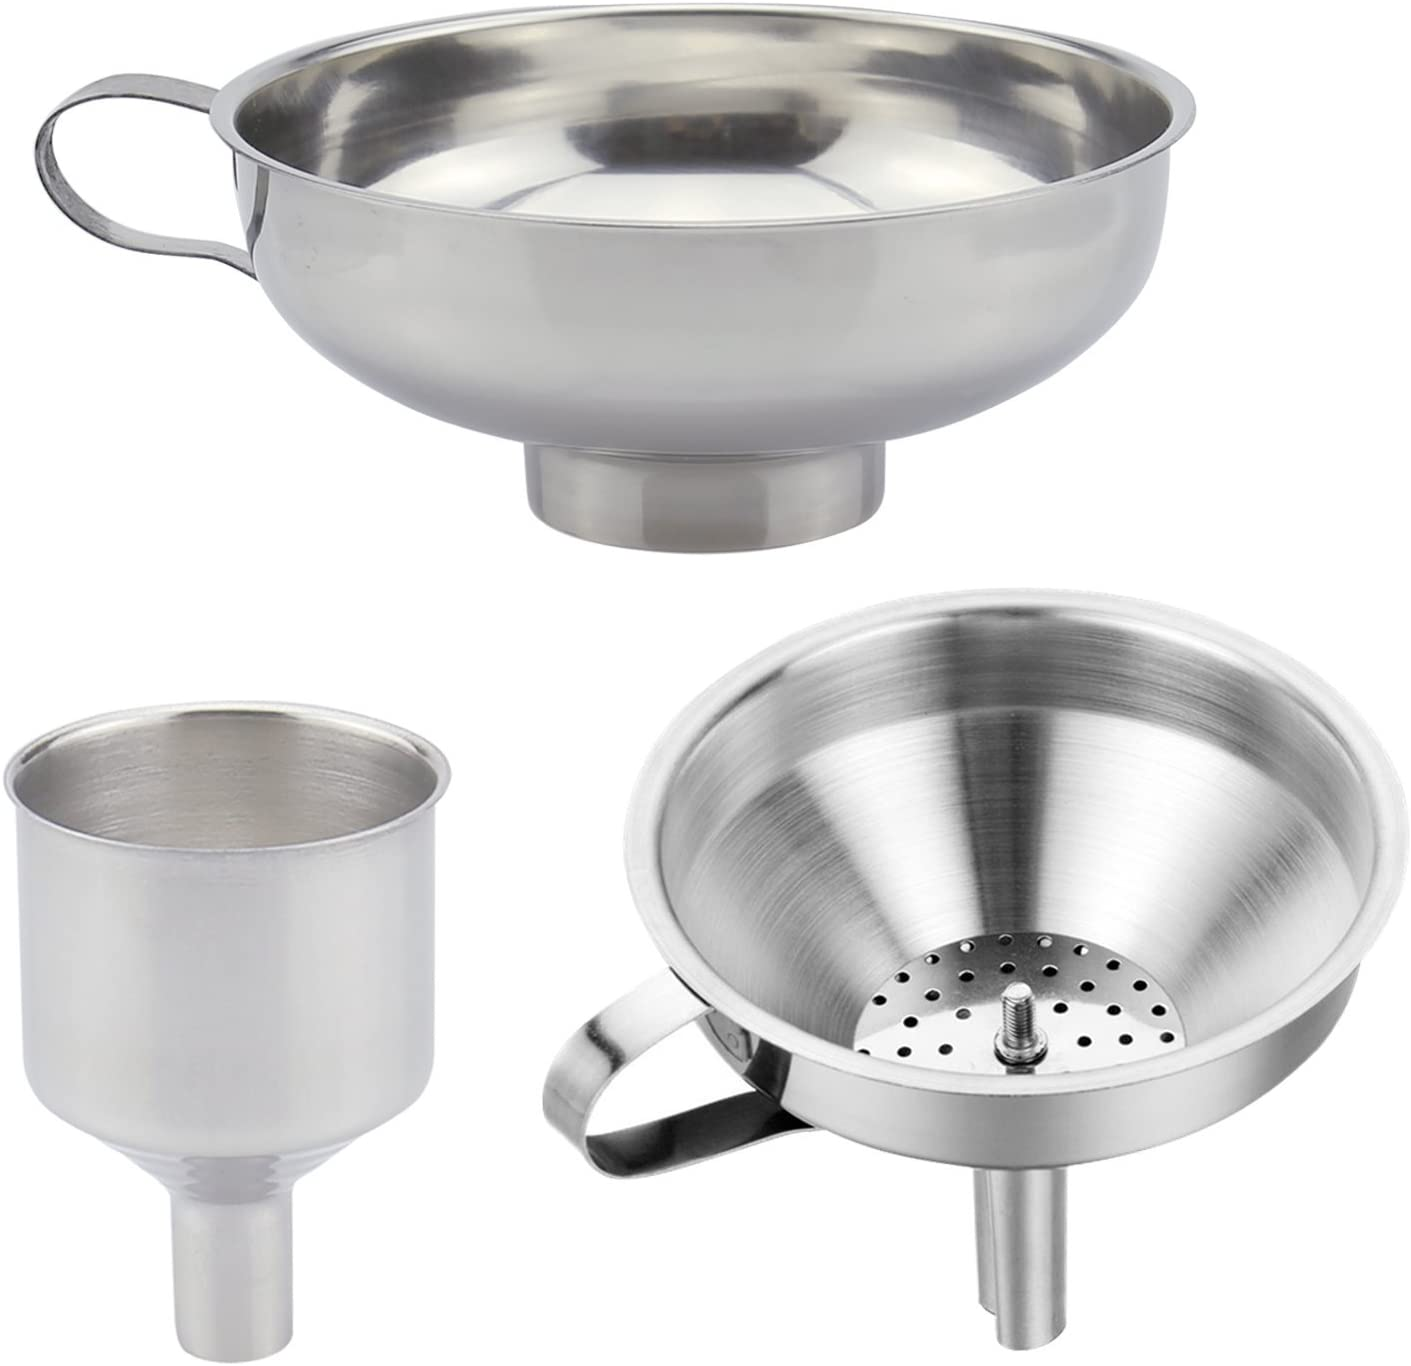 Stainless Steel Funnel Wear-resistant Useful Funnels Home Kitchenware Great